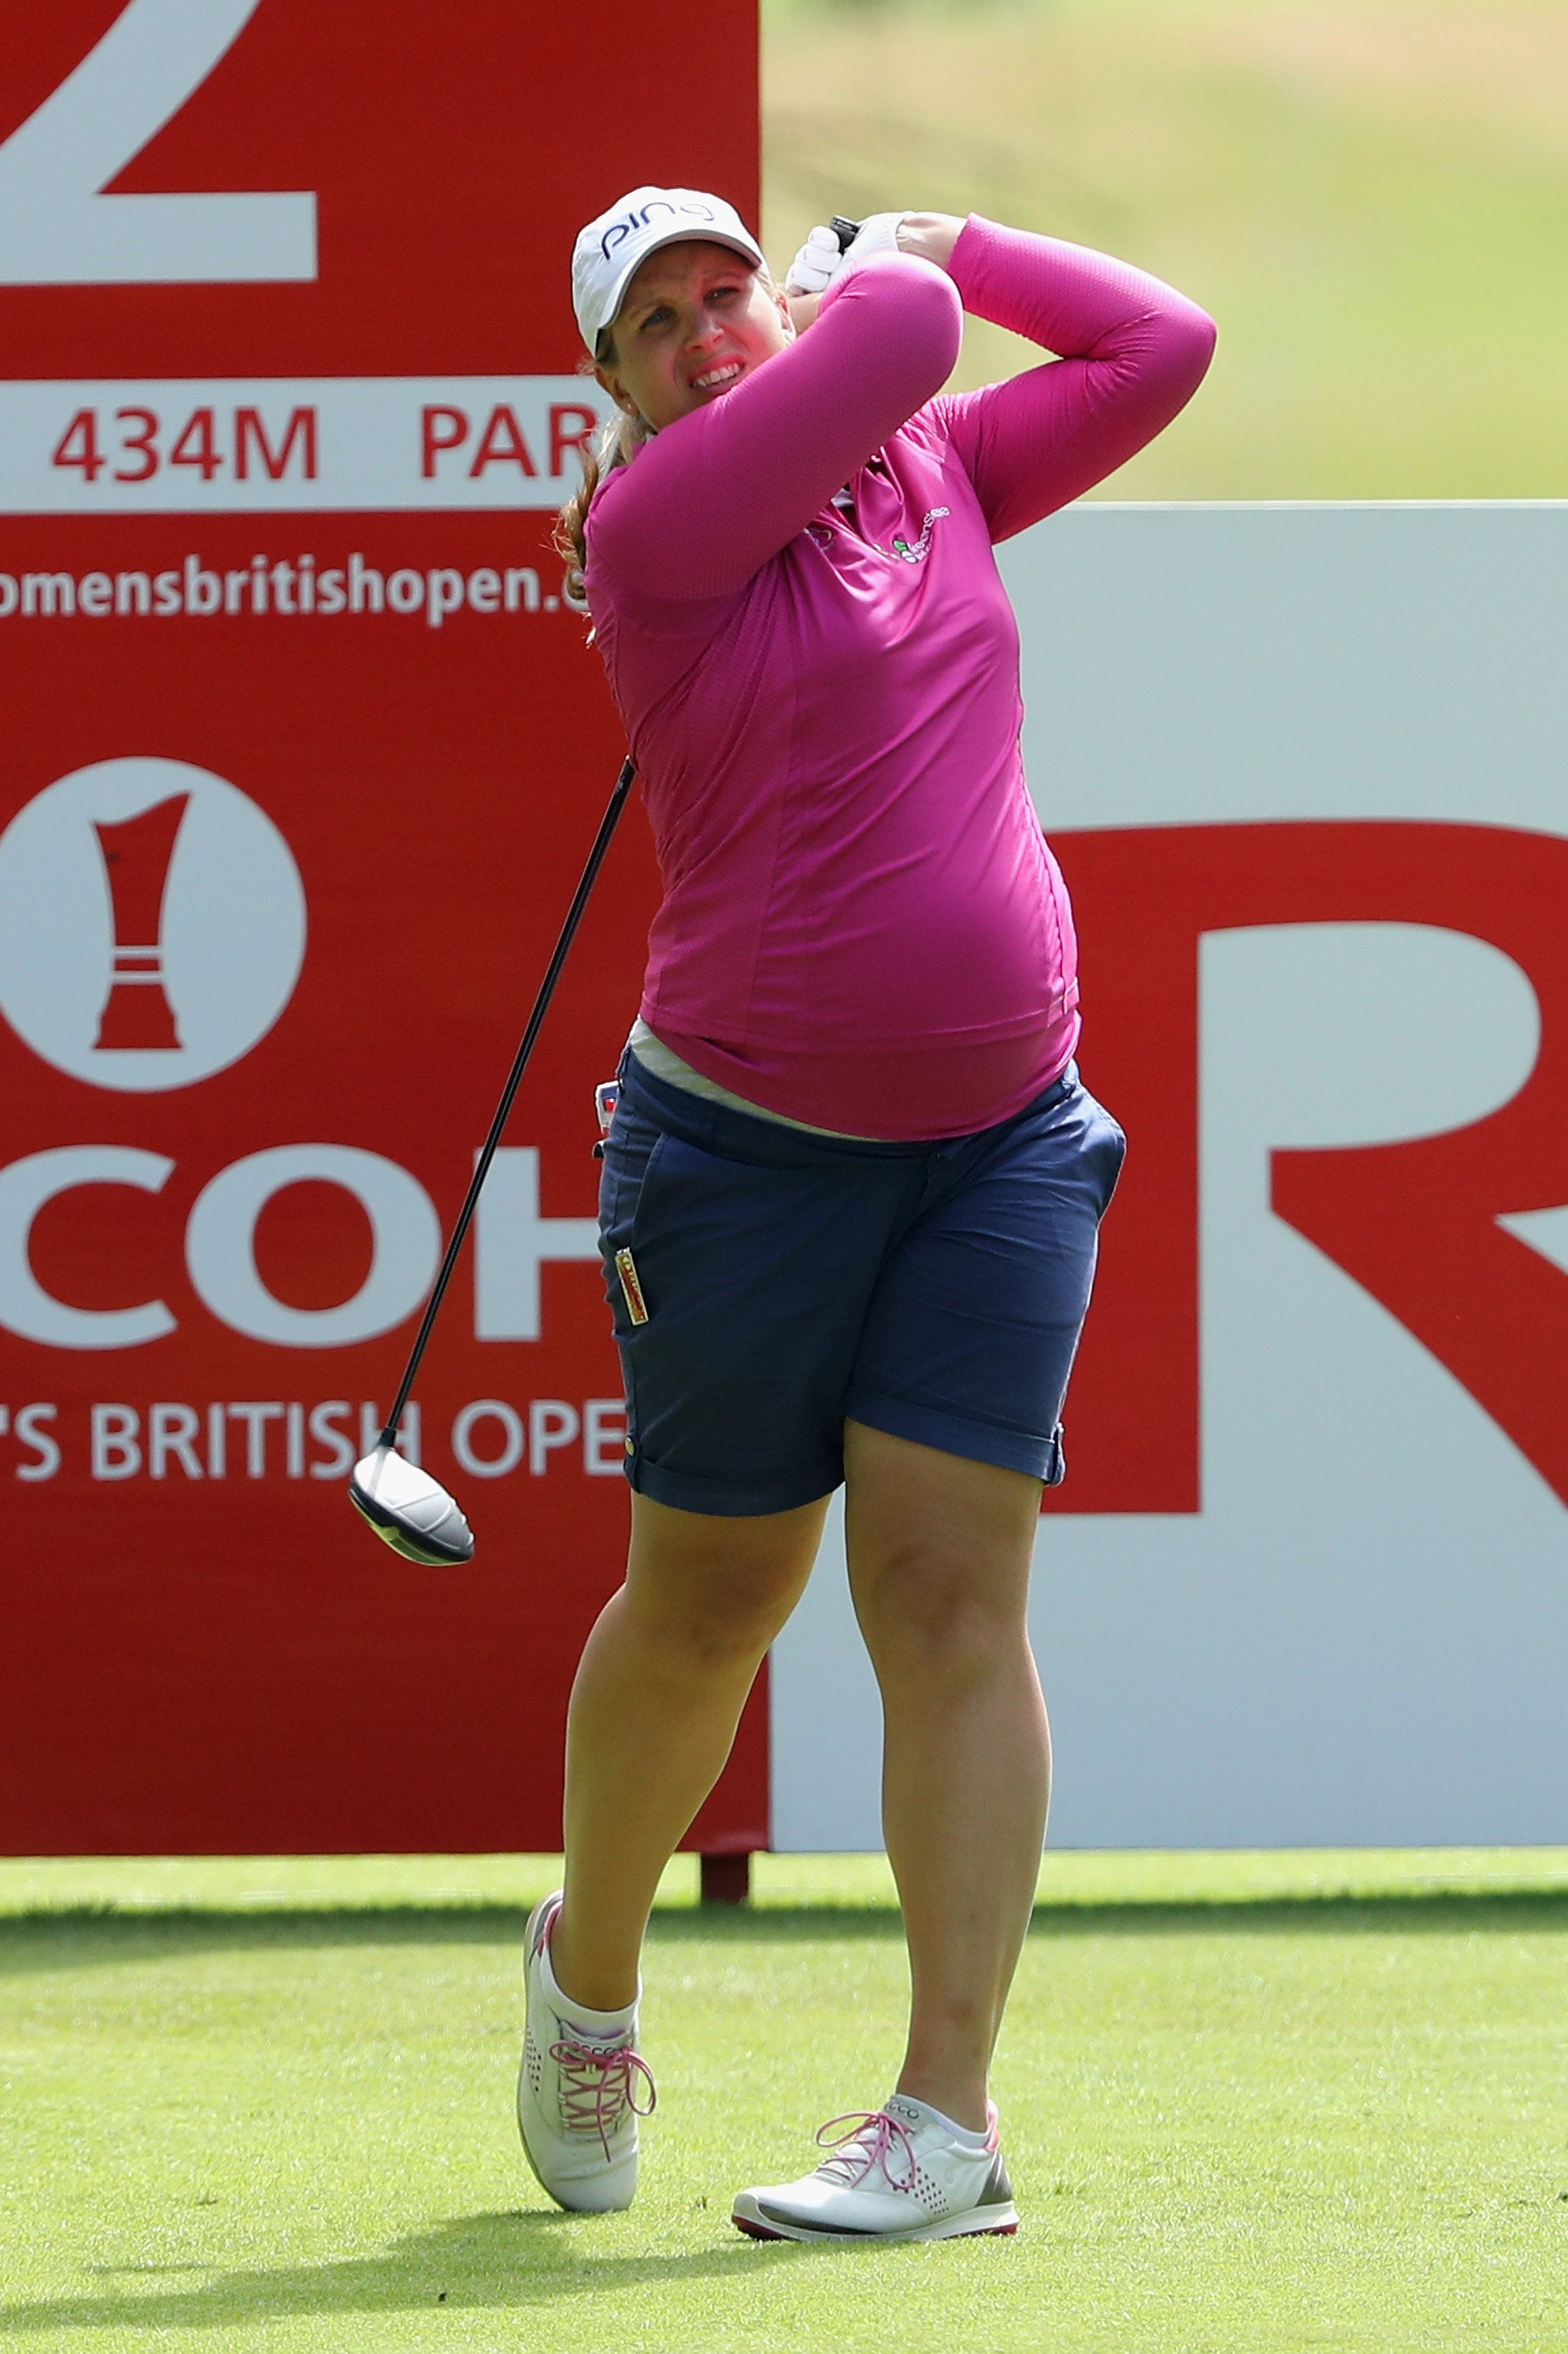 Golfer Liz Young Plays The British Open At Seven Months